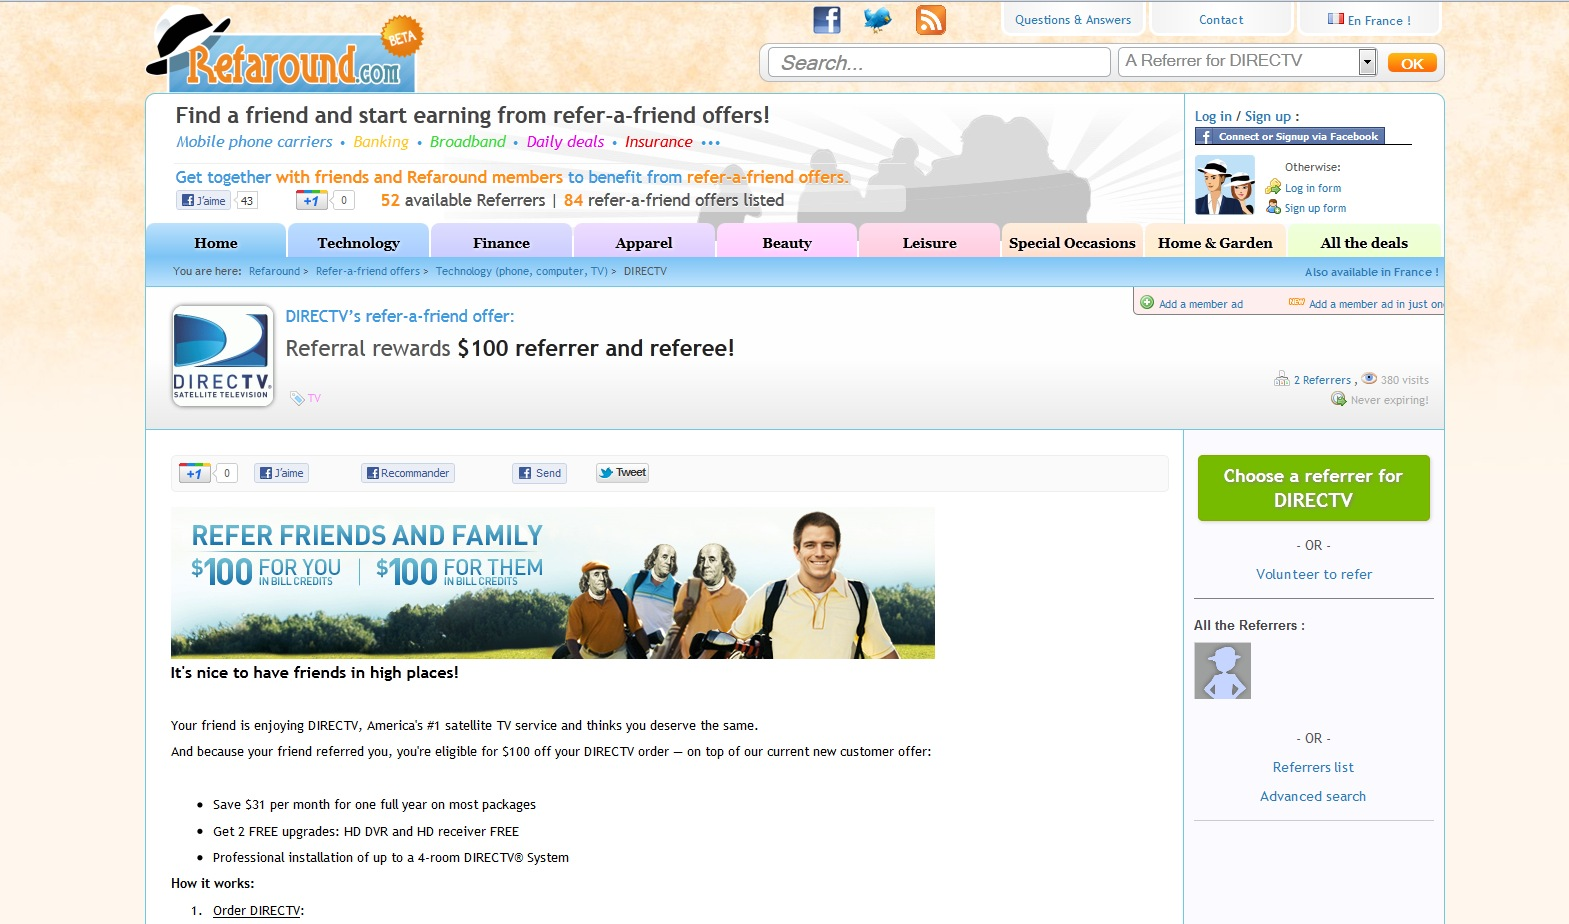 refer a friend offers in the us refaround com the direct tv referral offer page link